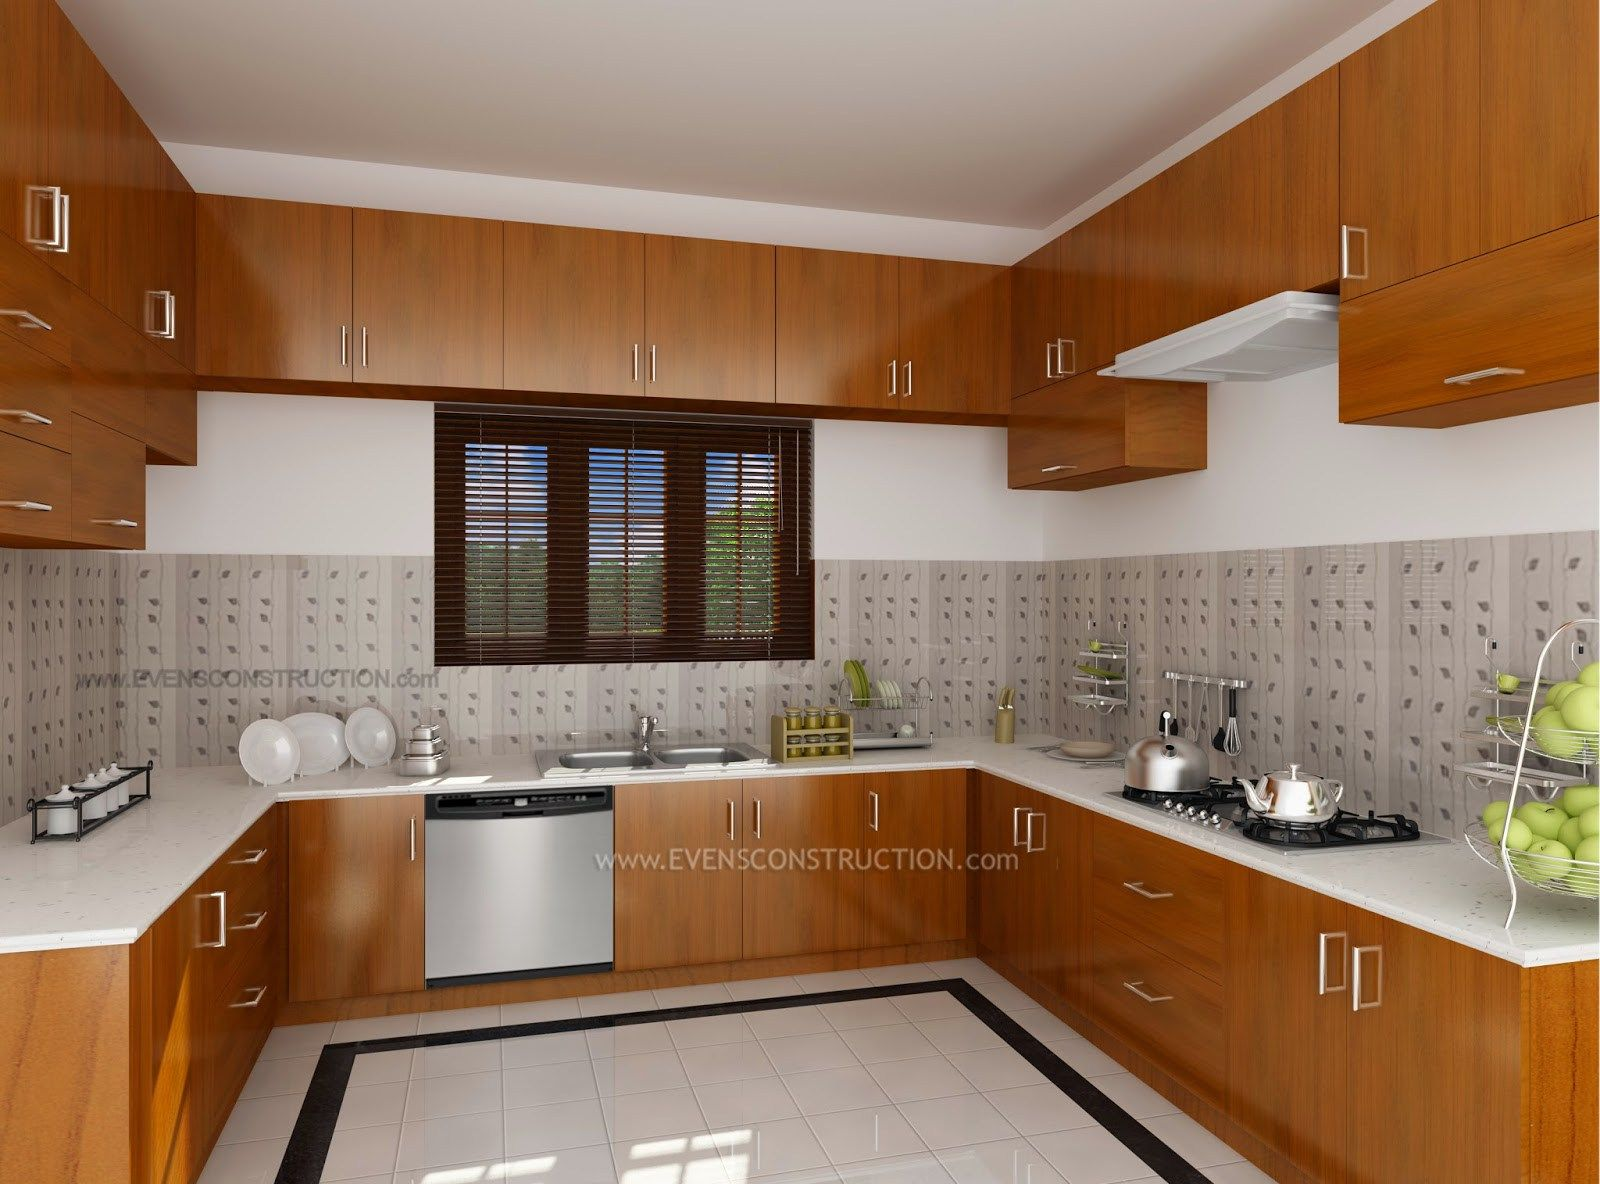 design interior kitchen home kerala modern house kitchen ...